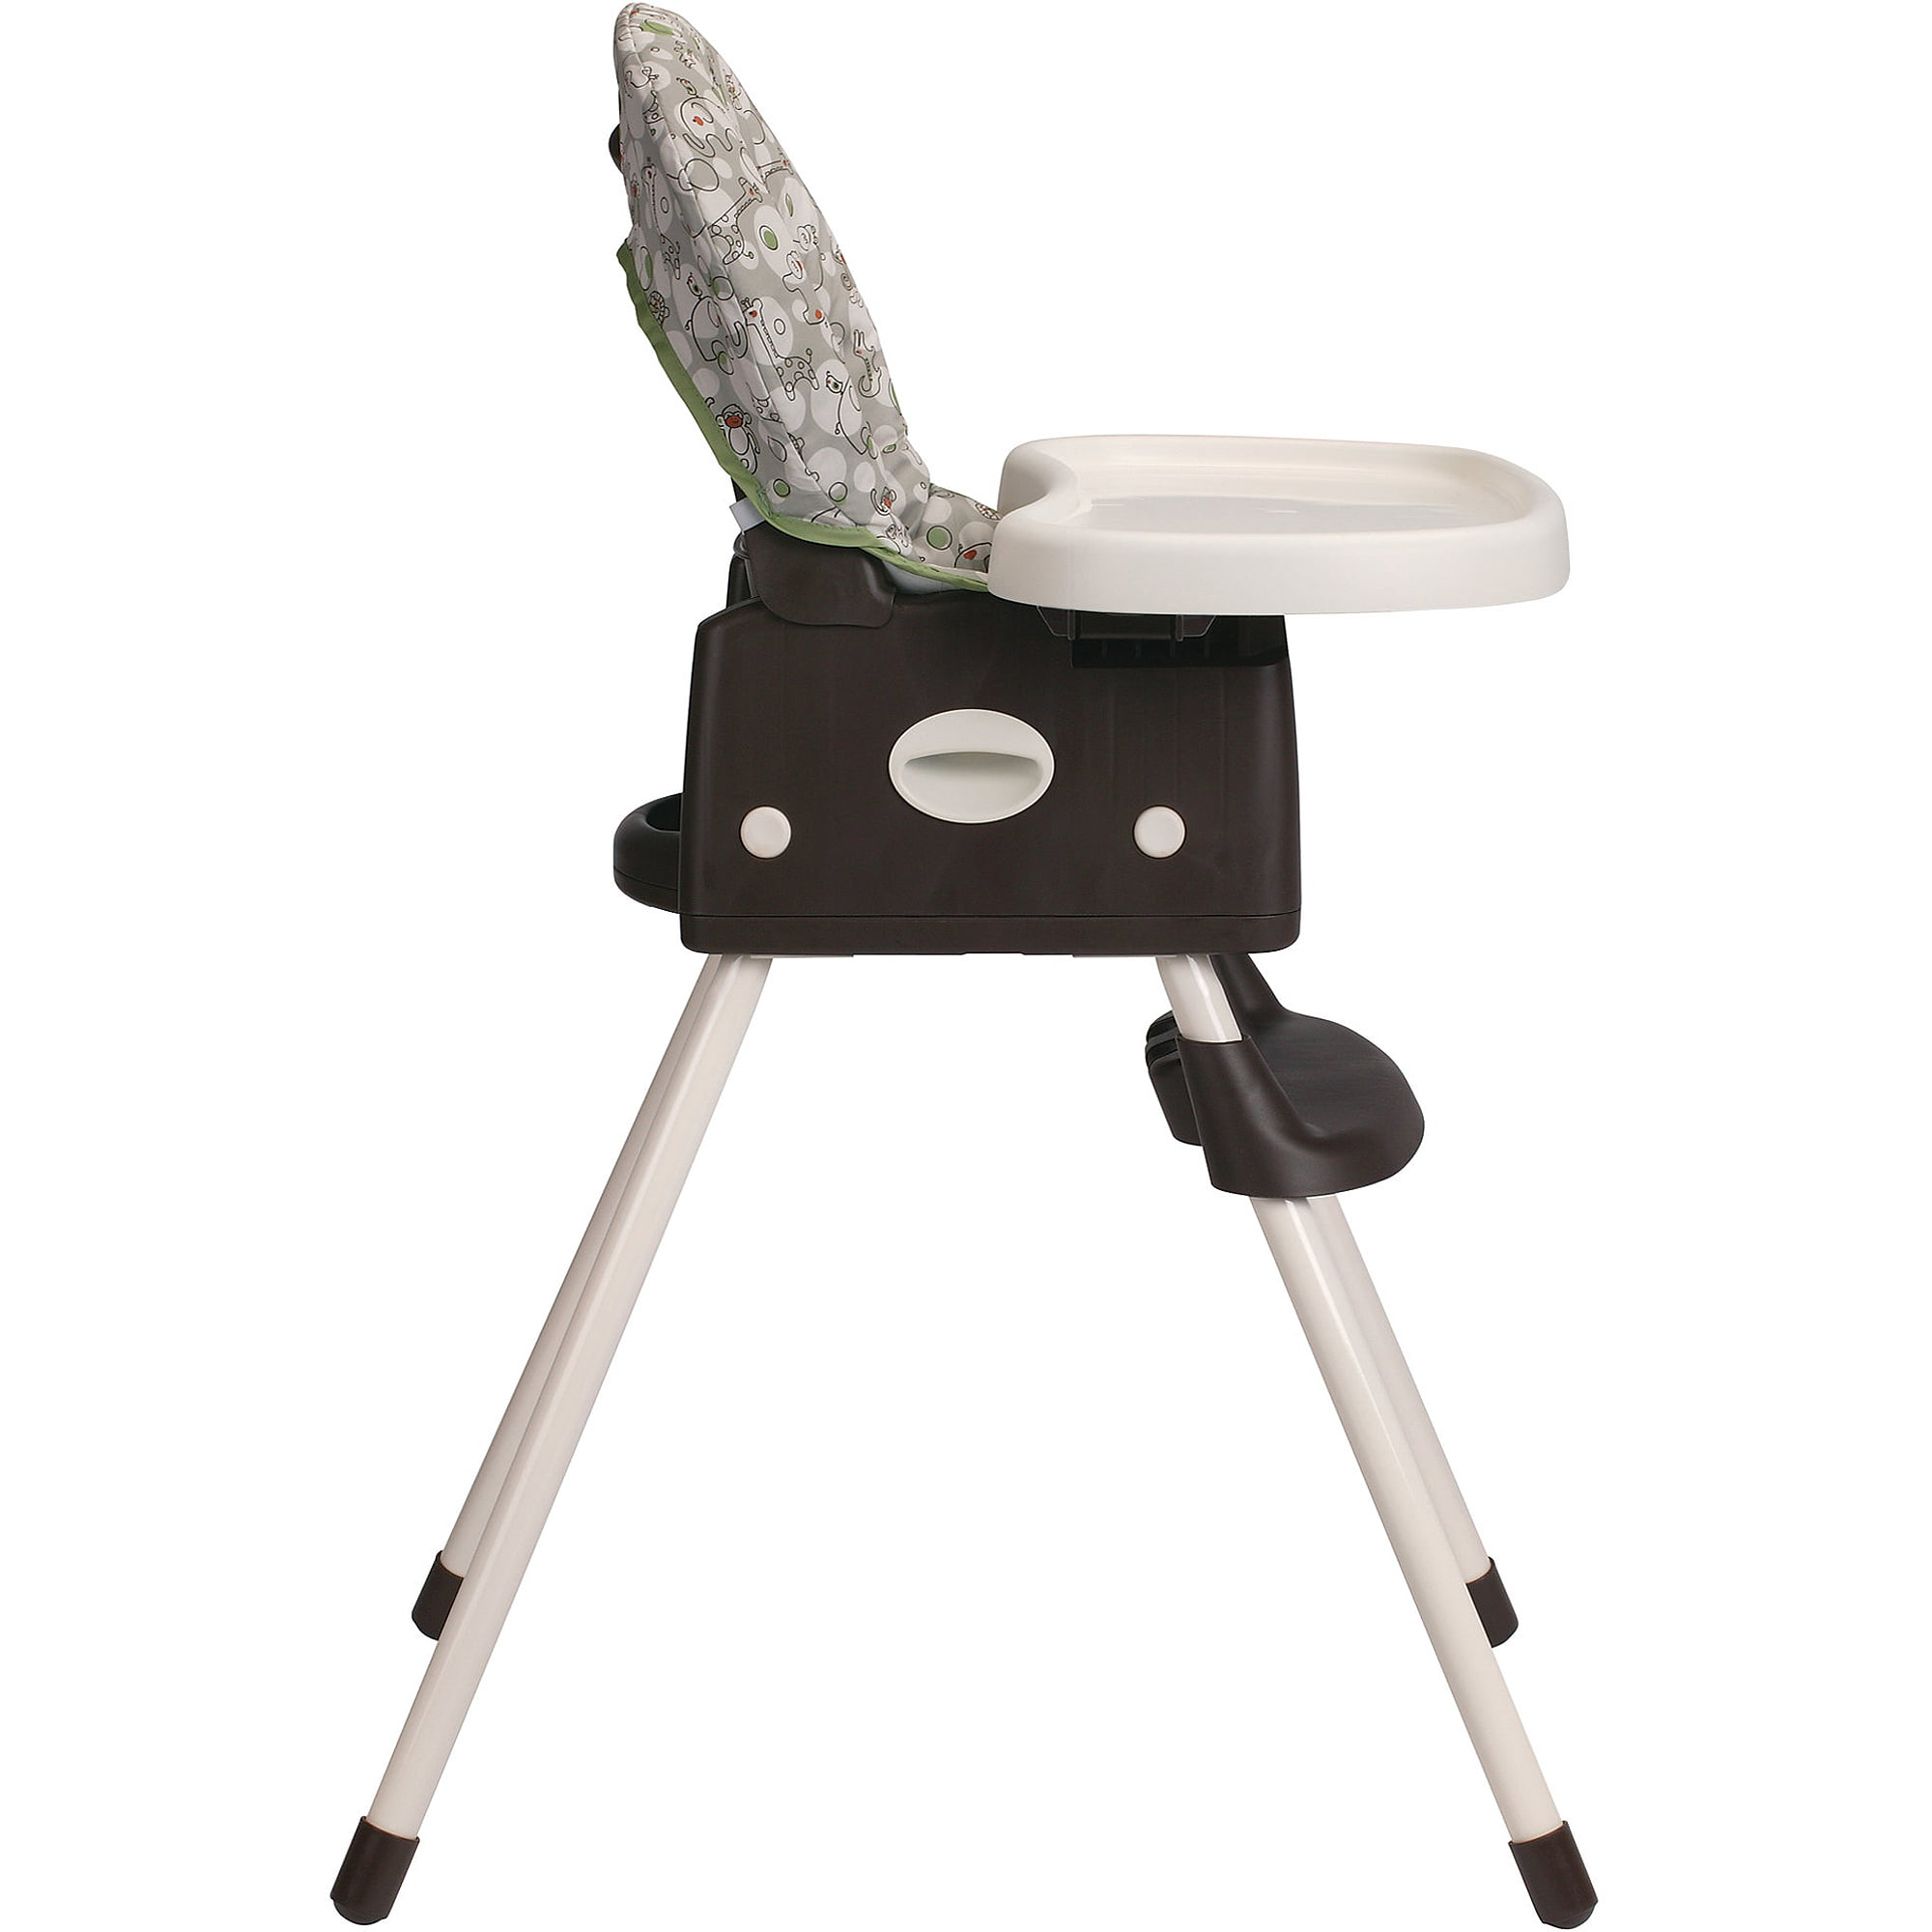 Graco SimpleSwitch 2 in 1 High Chair Zuba Walmart